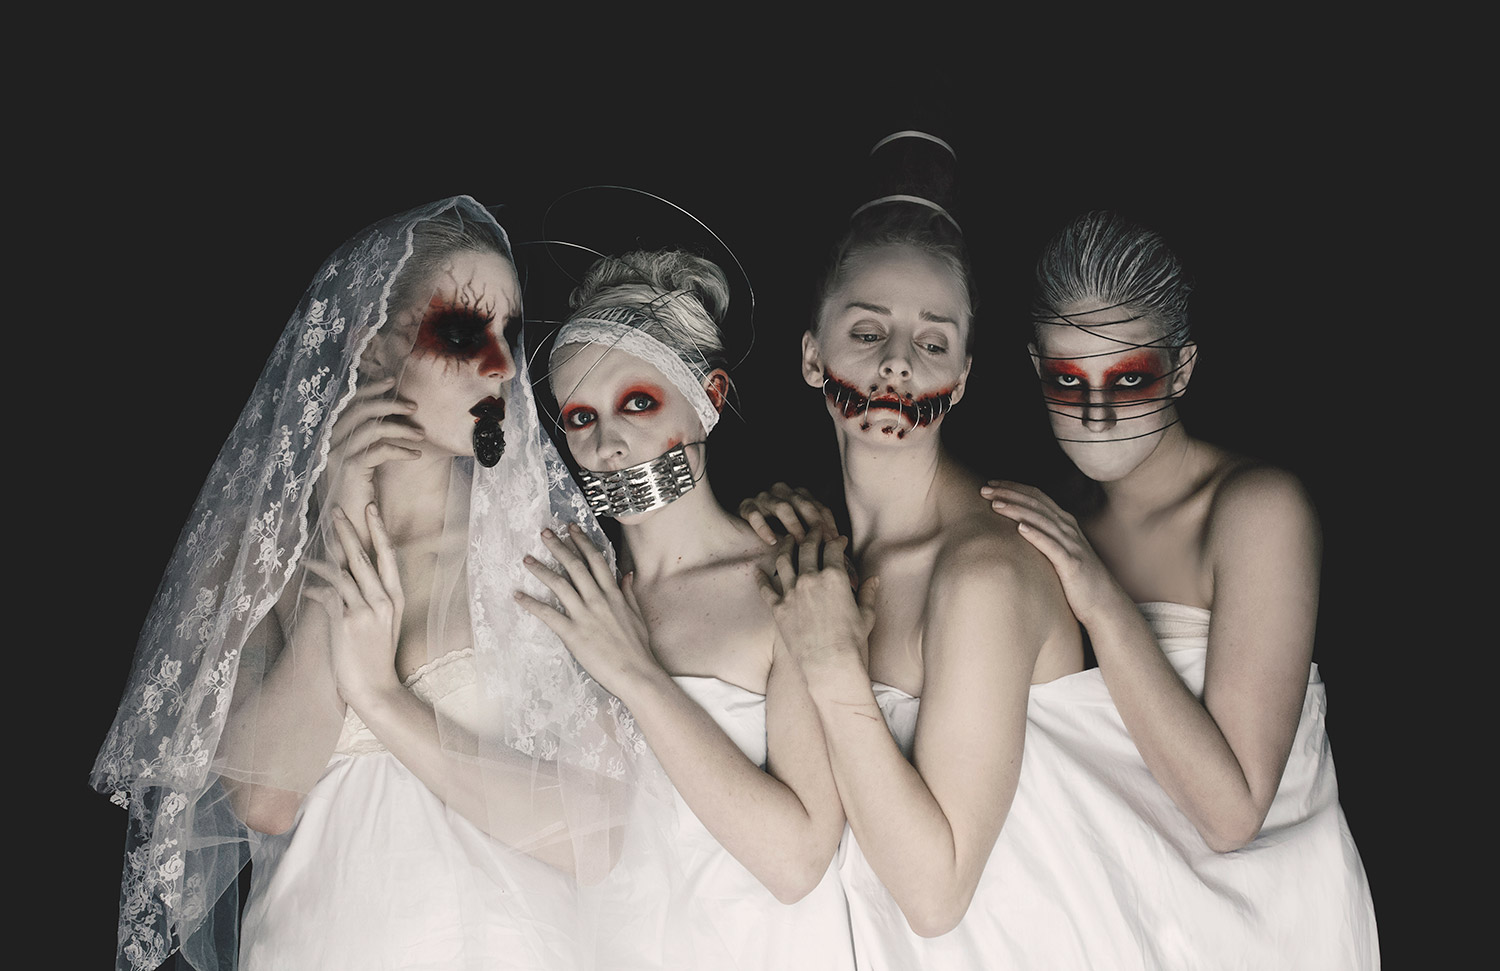 Eliza Kinchington, Danse Macabre - group shot all wearing white